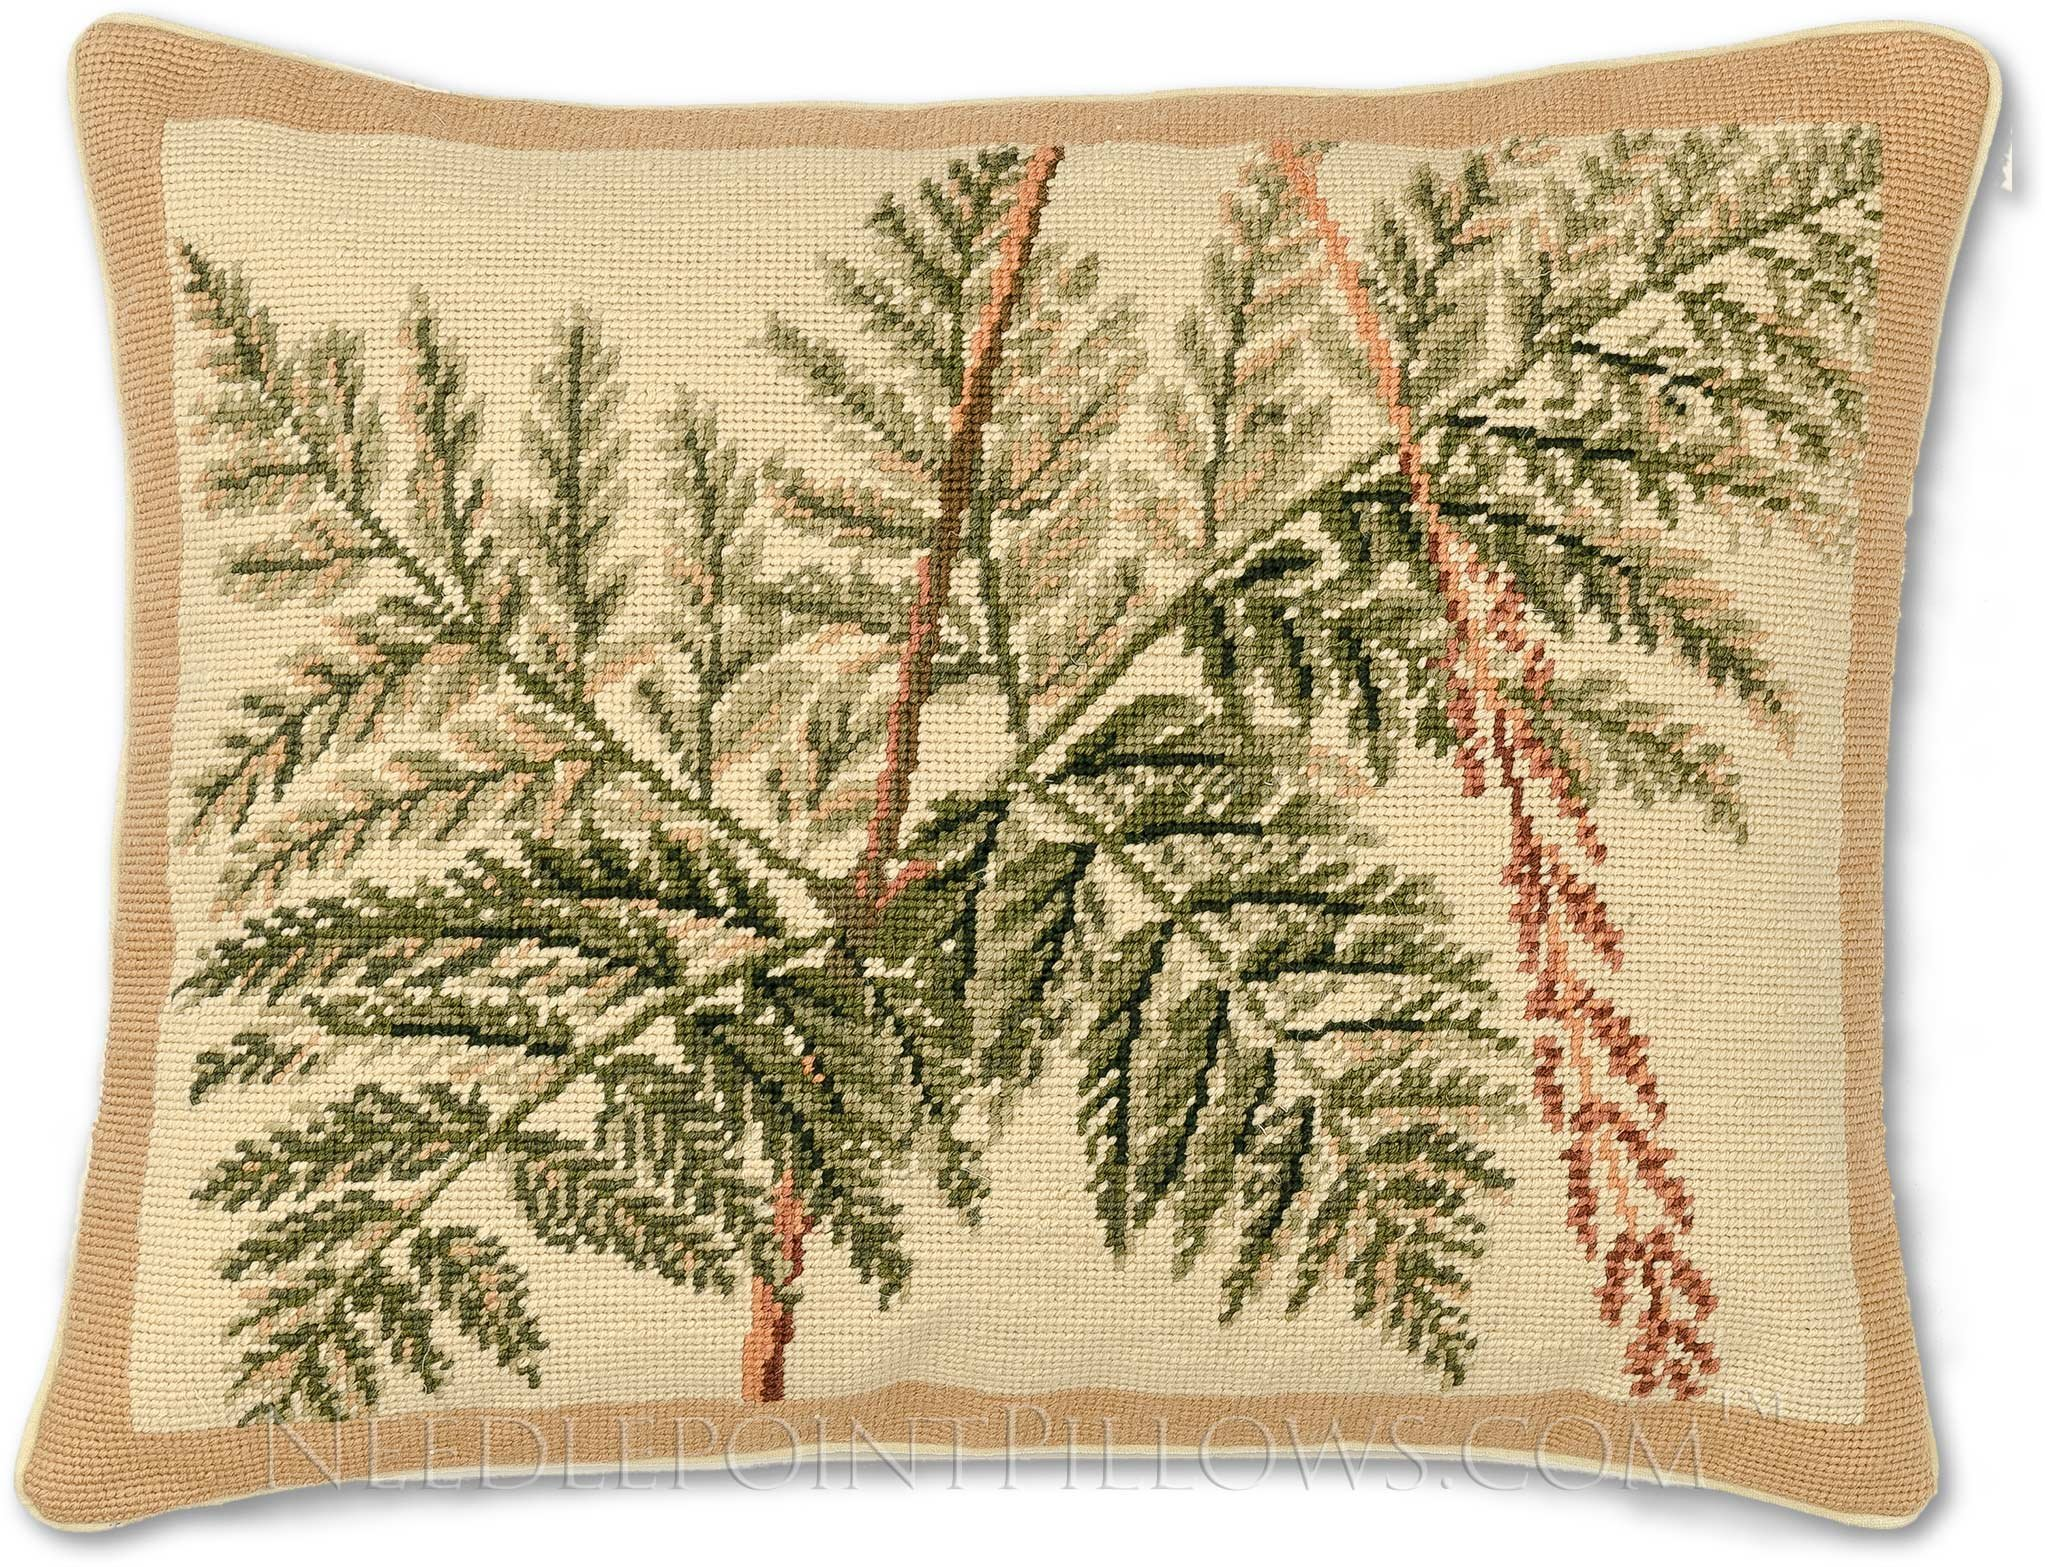 Handmade 100% Wool Needlepoint Fern Leaves Throw Pillow. 16'' x 20''. by NeedlepointPillows.com